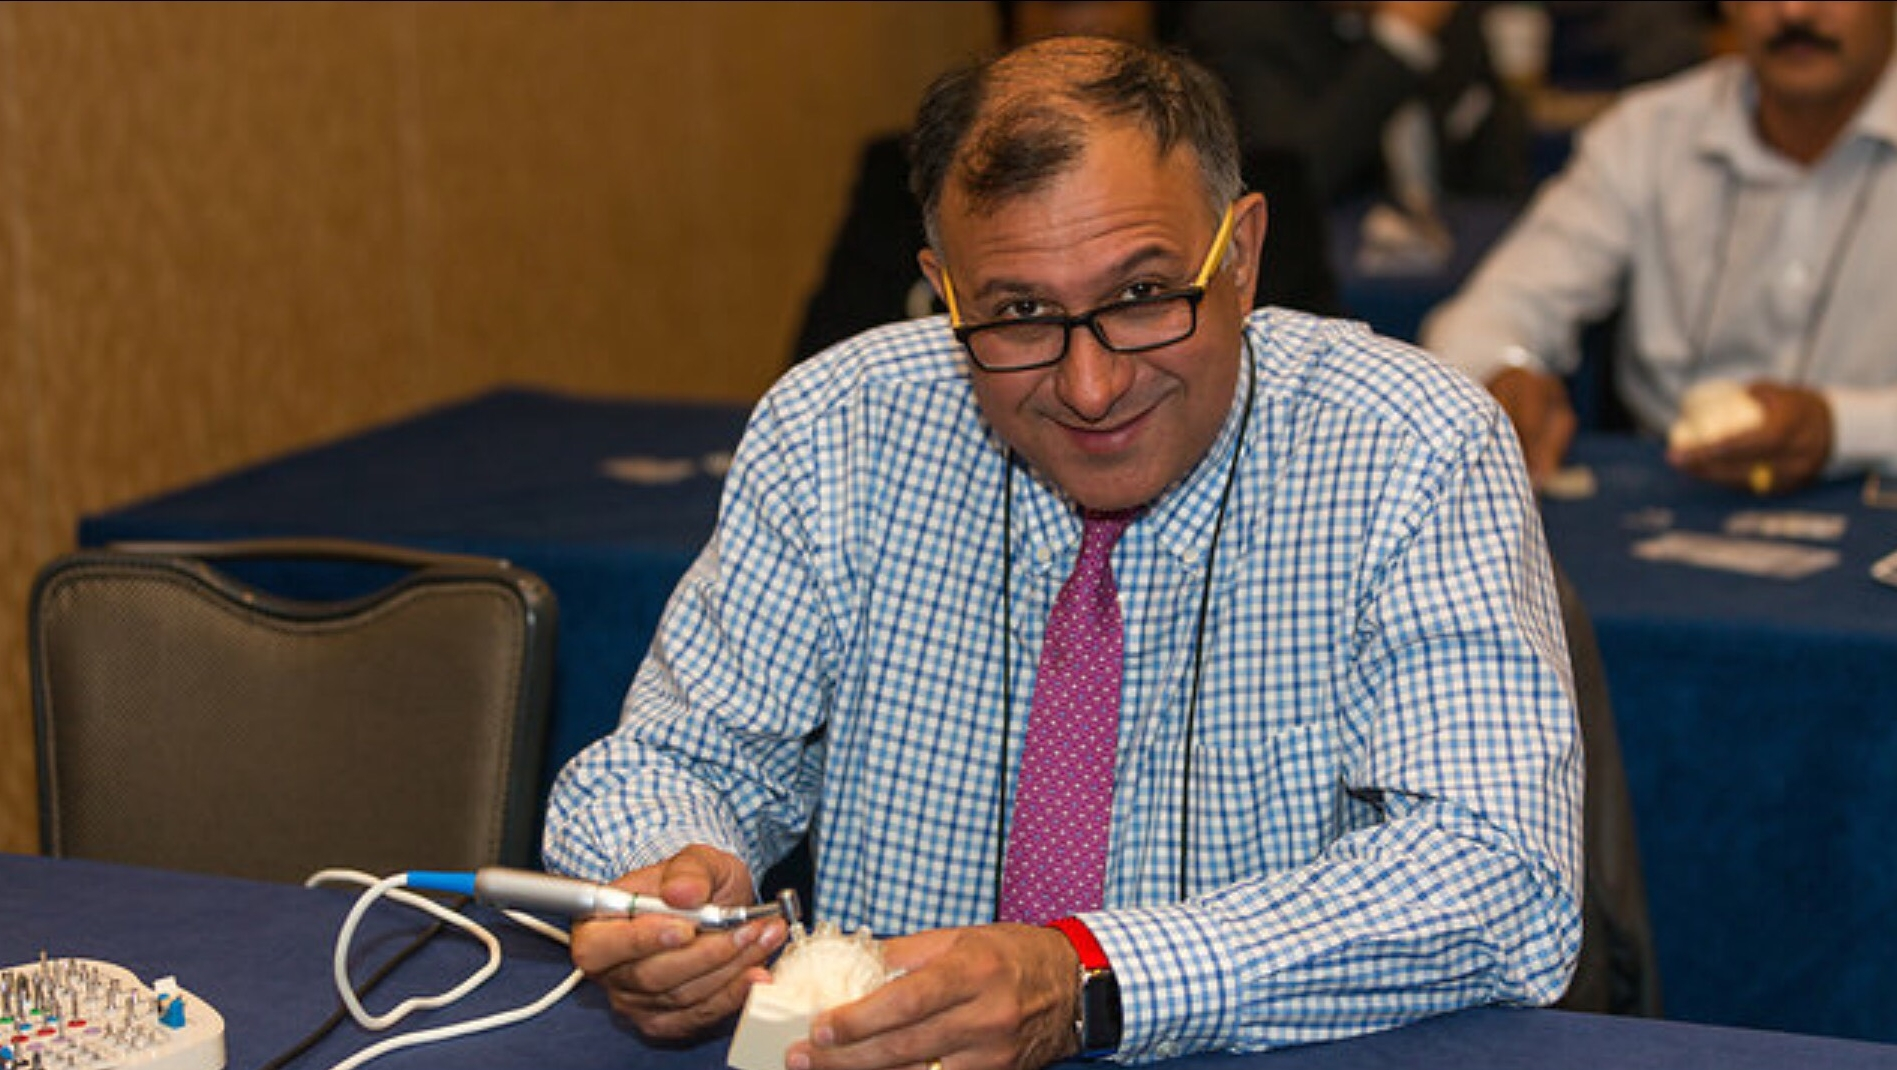 Attendee during Dr. Ara Nazarian's course at AAID